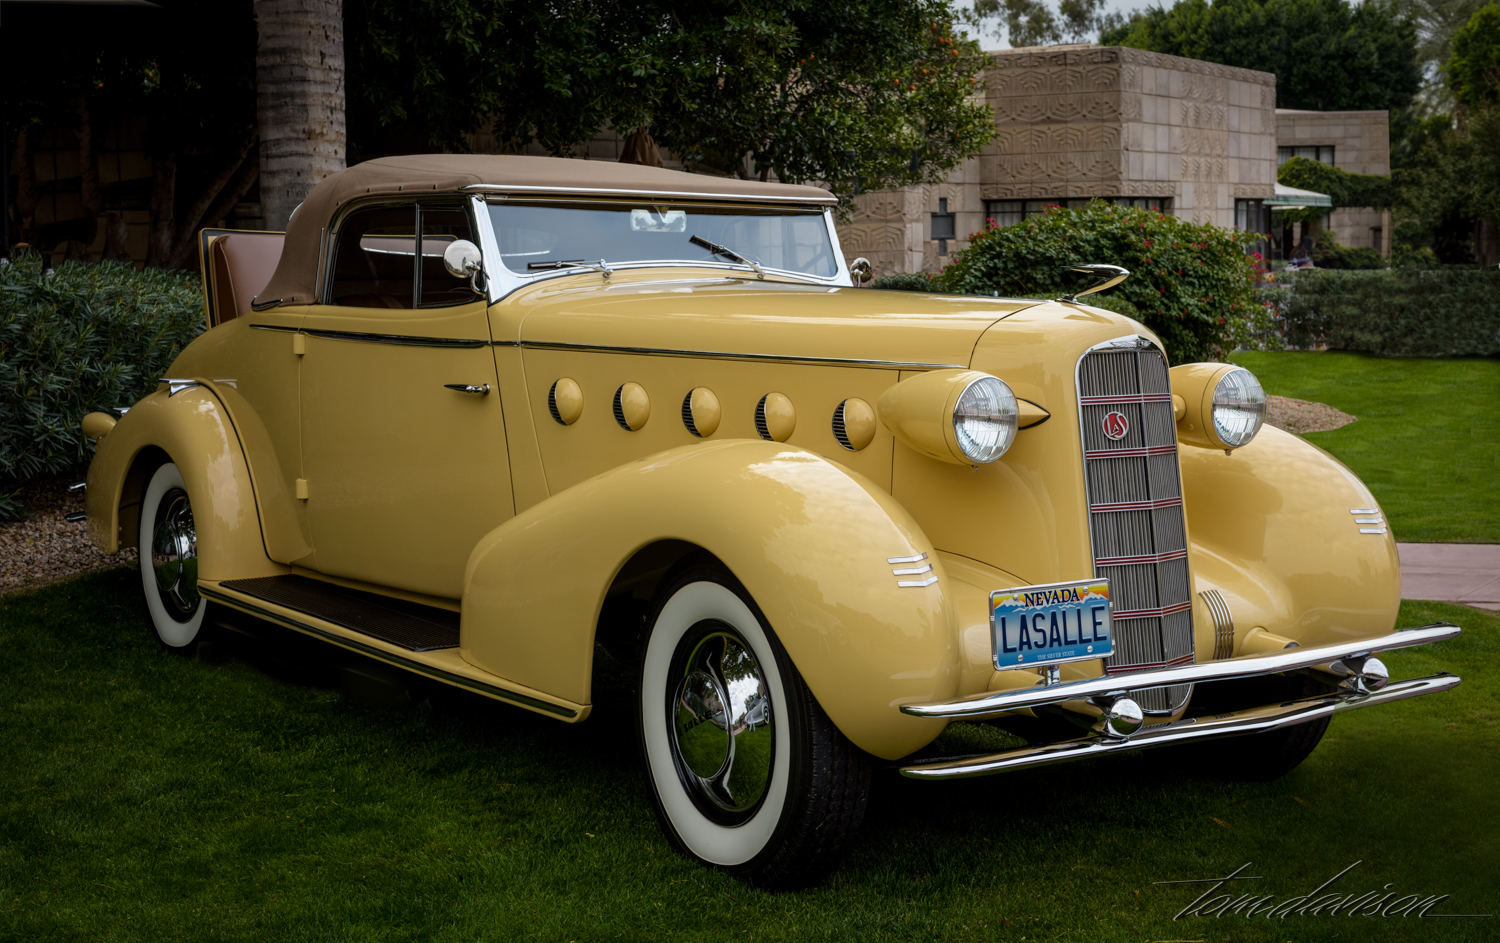 Late 30's LaSalle, known as the baby Cadillac.